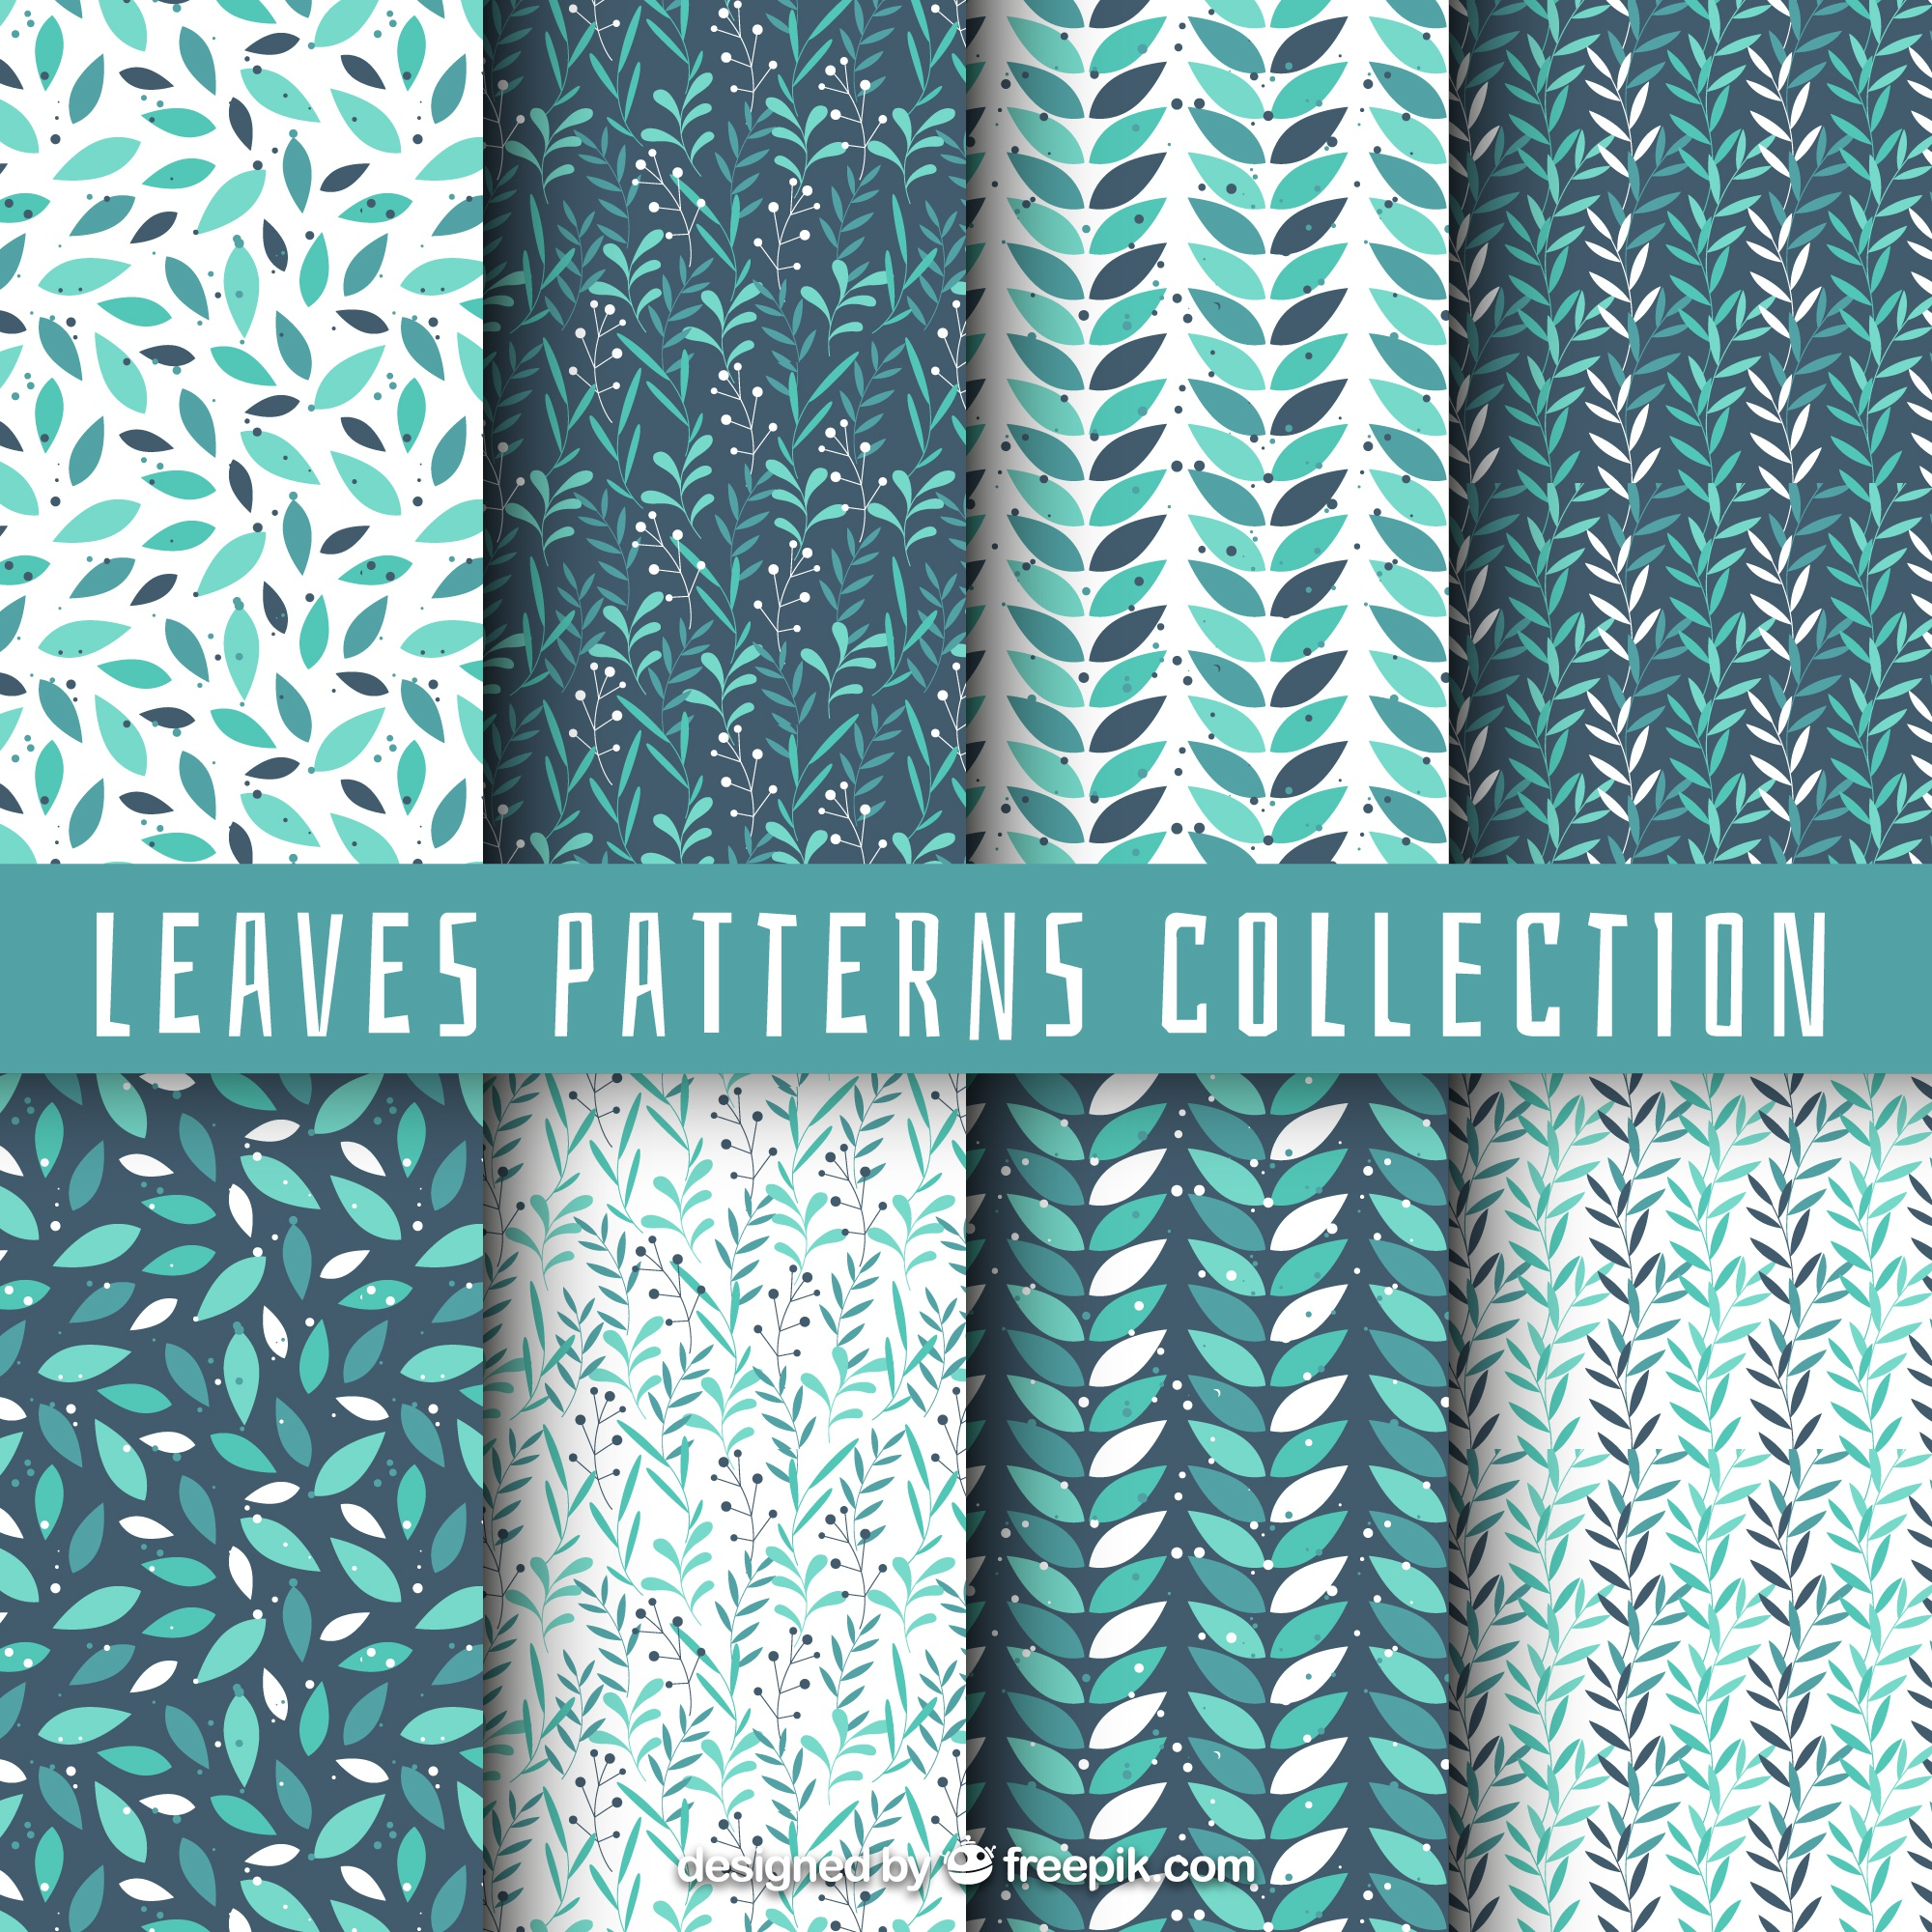 Collection of pattern with leaves